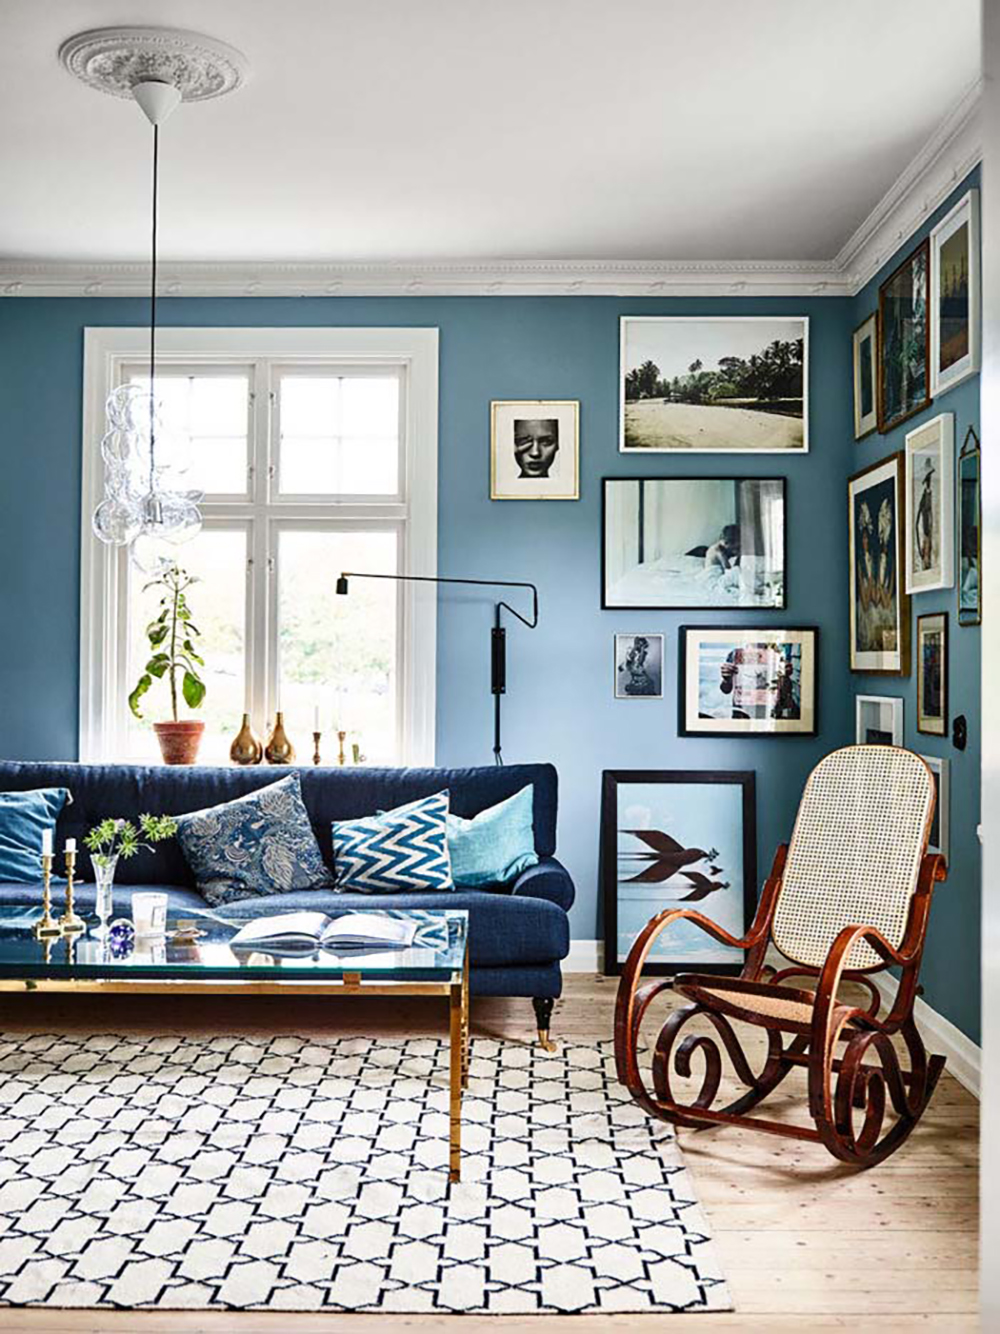 Living room with different shades of blue and some bright colours - 35 ideas for blue wall colour in home decoration | Aliz's Wonderland